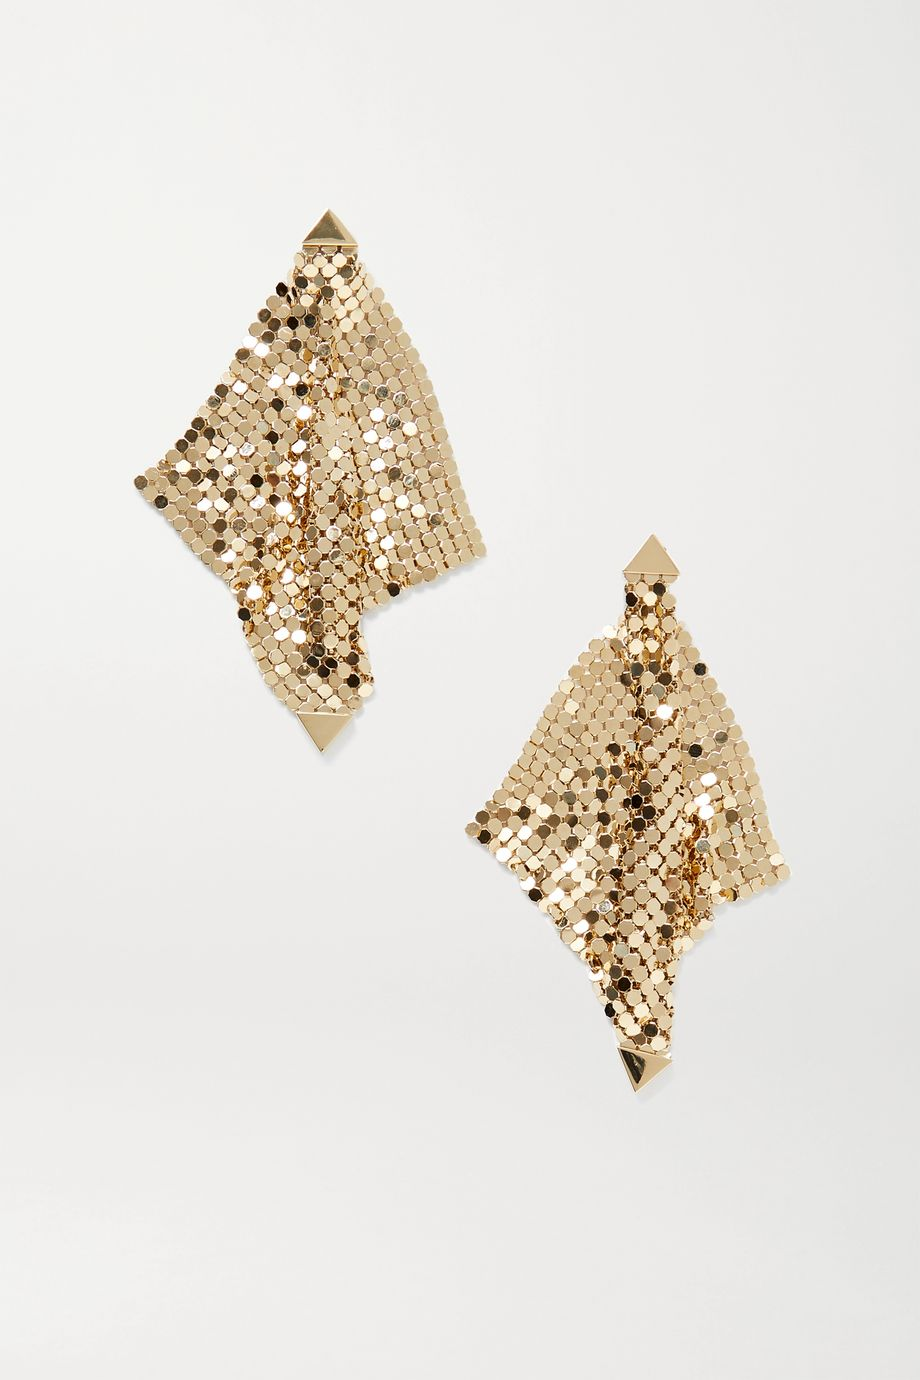 Paco Rabanne Pixel Flow gold-tone chainmail earrings